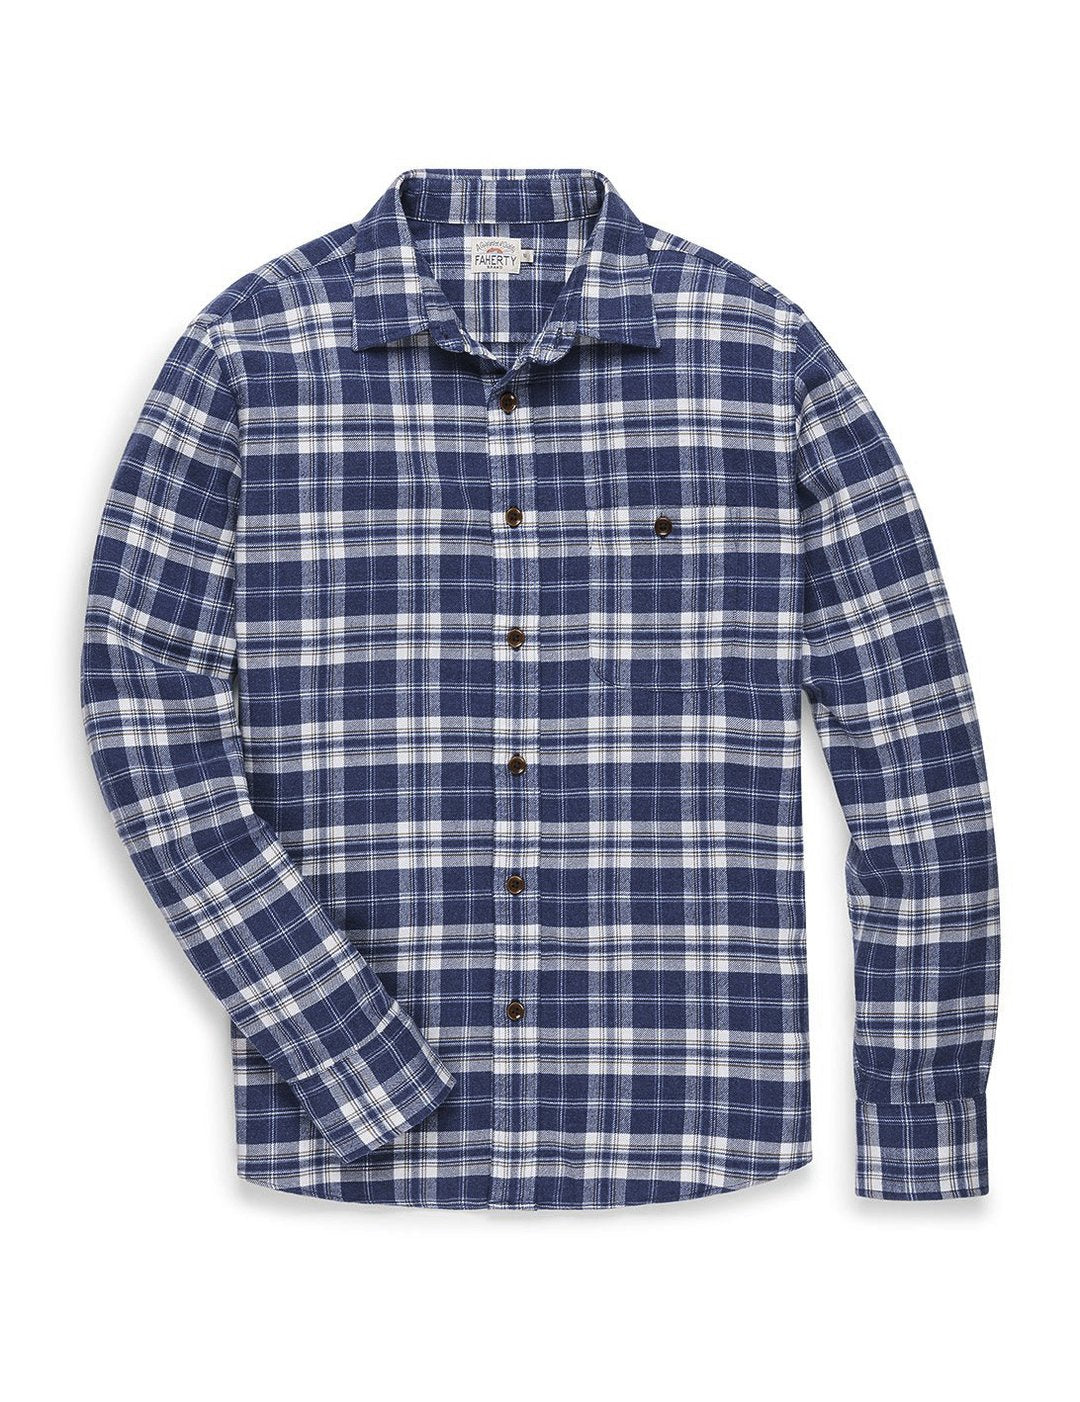 Faherty - Stretch Seaview Flannel